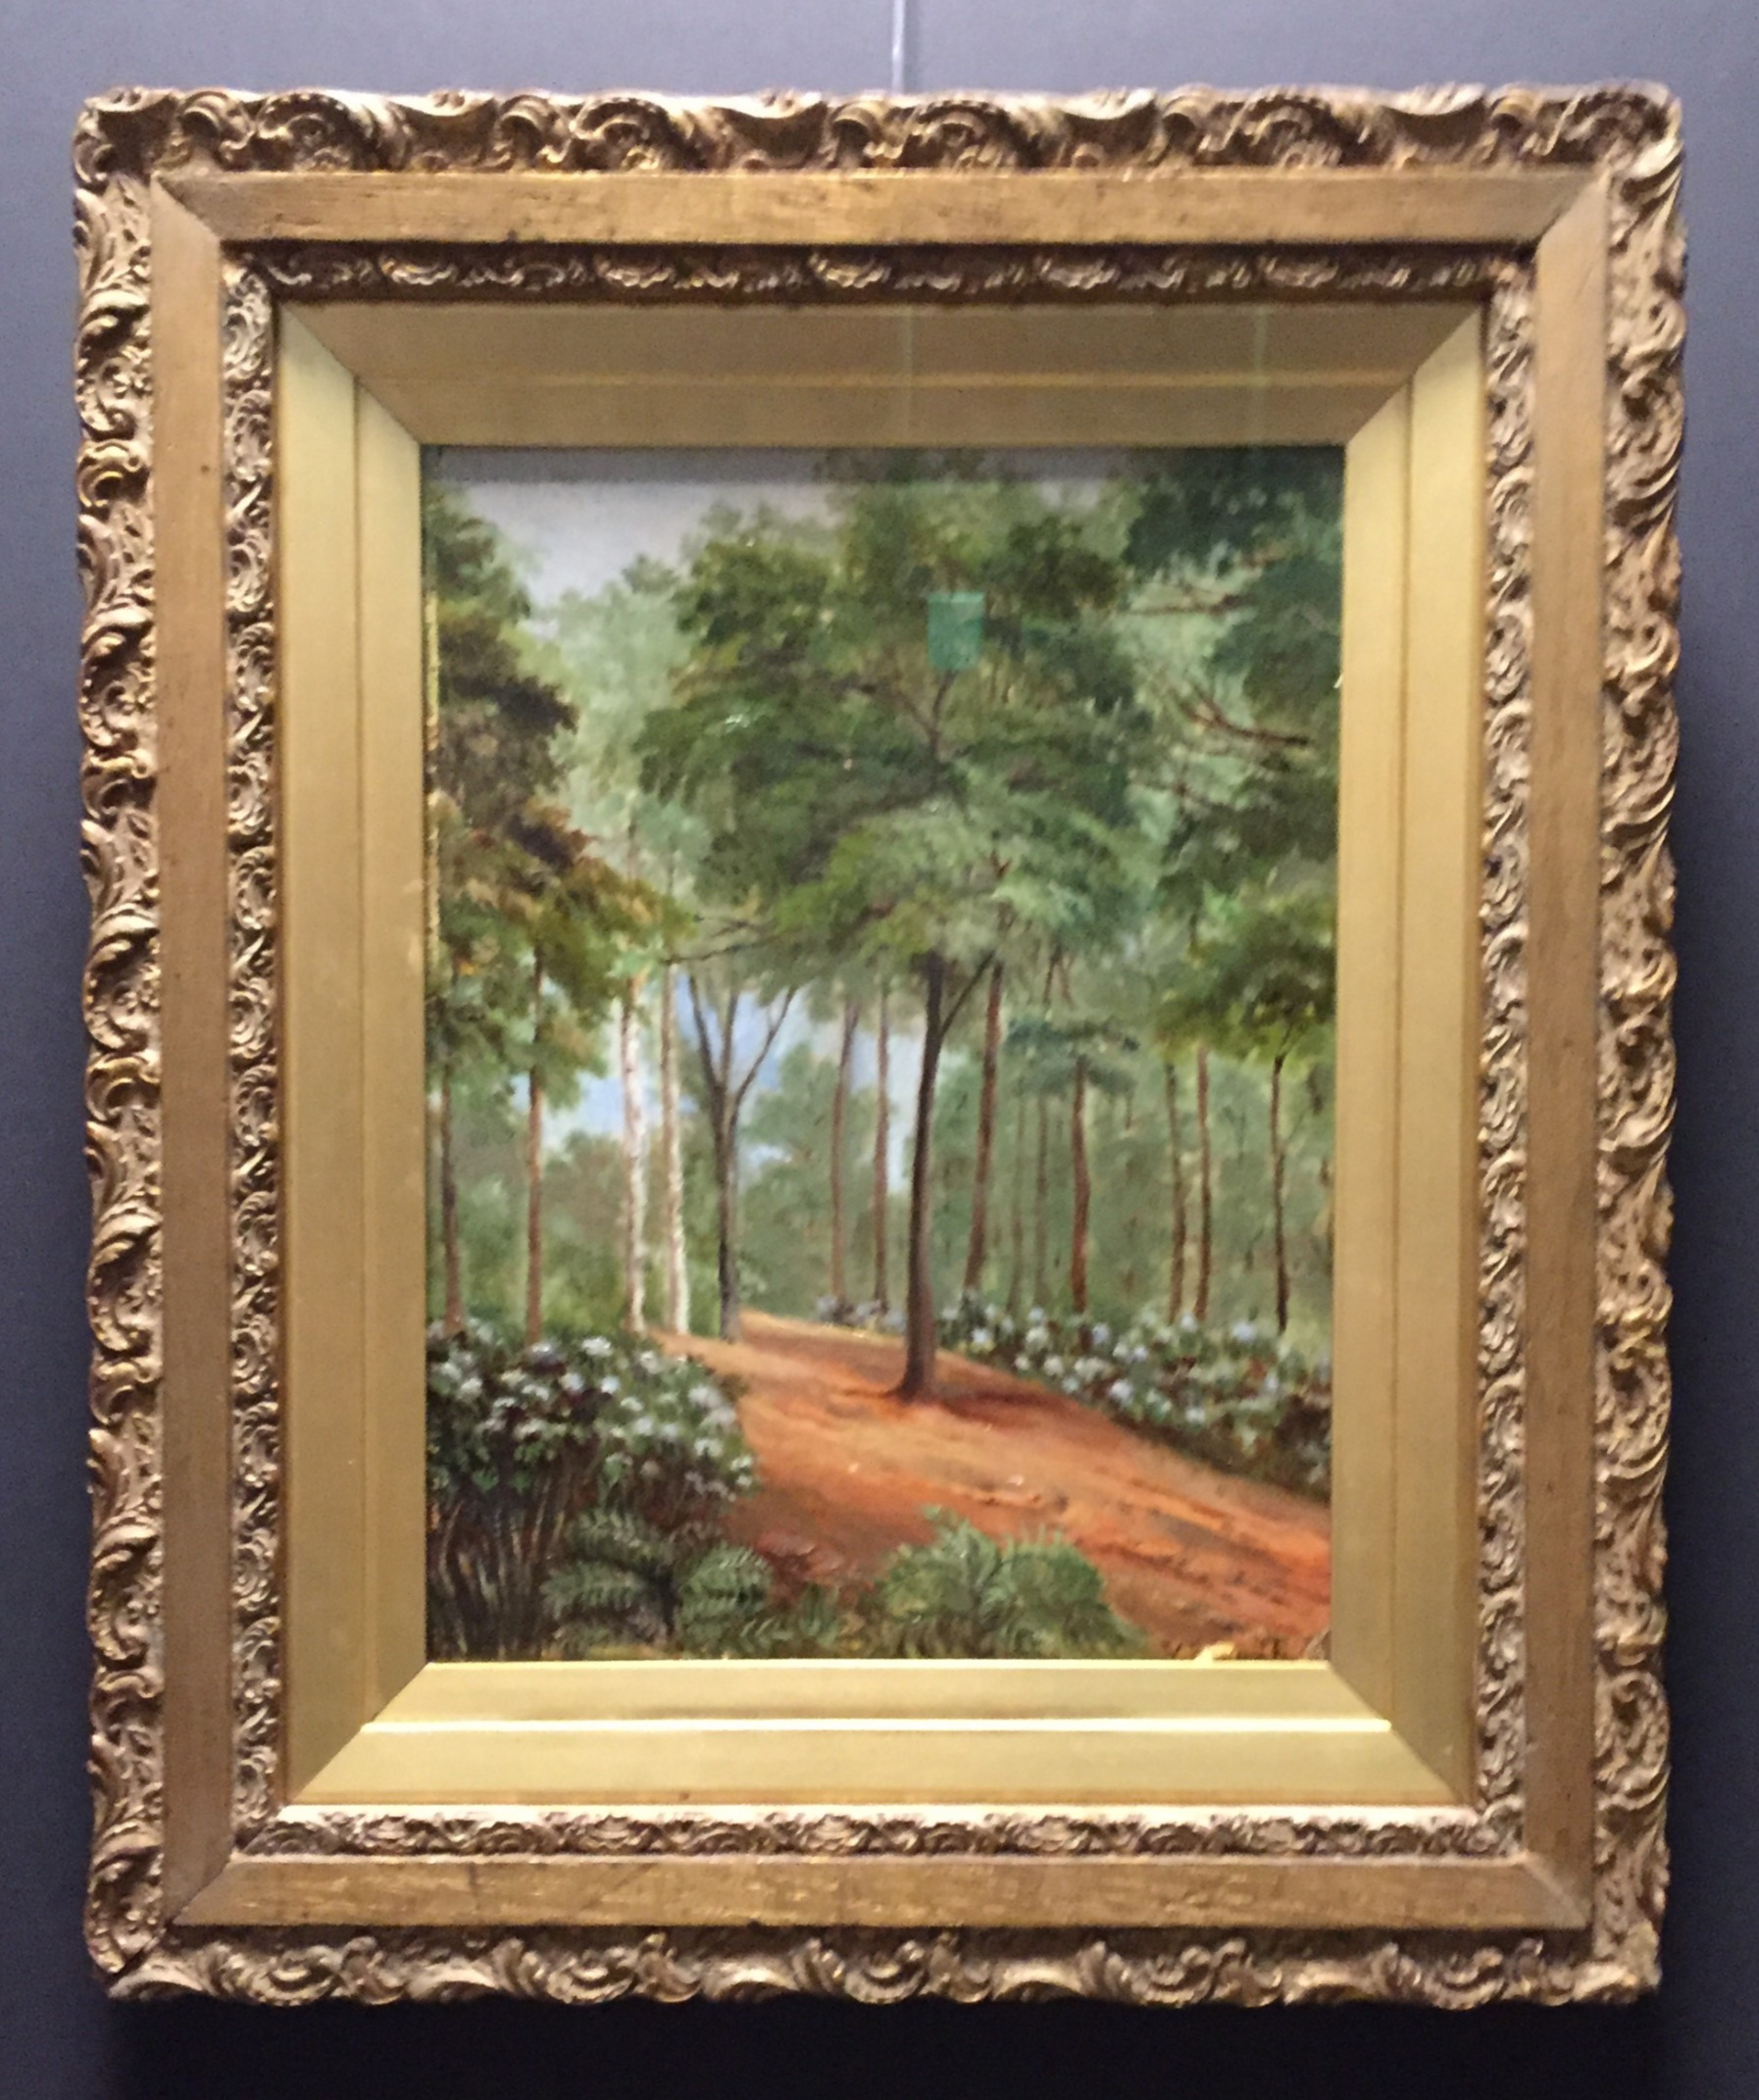 Oil_Painting_Forrest_Landscape_edited